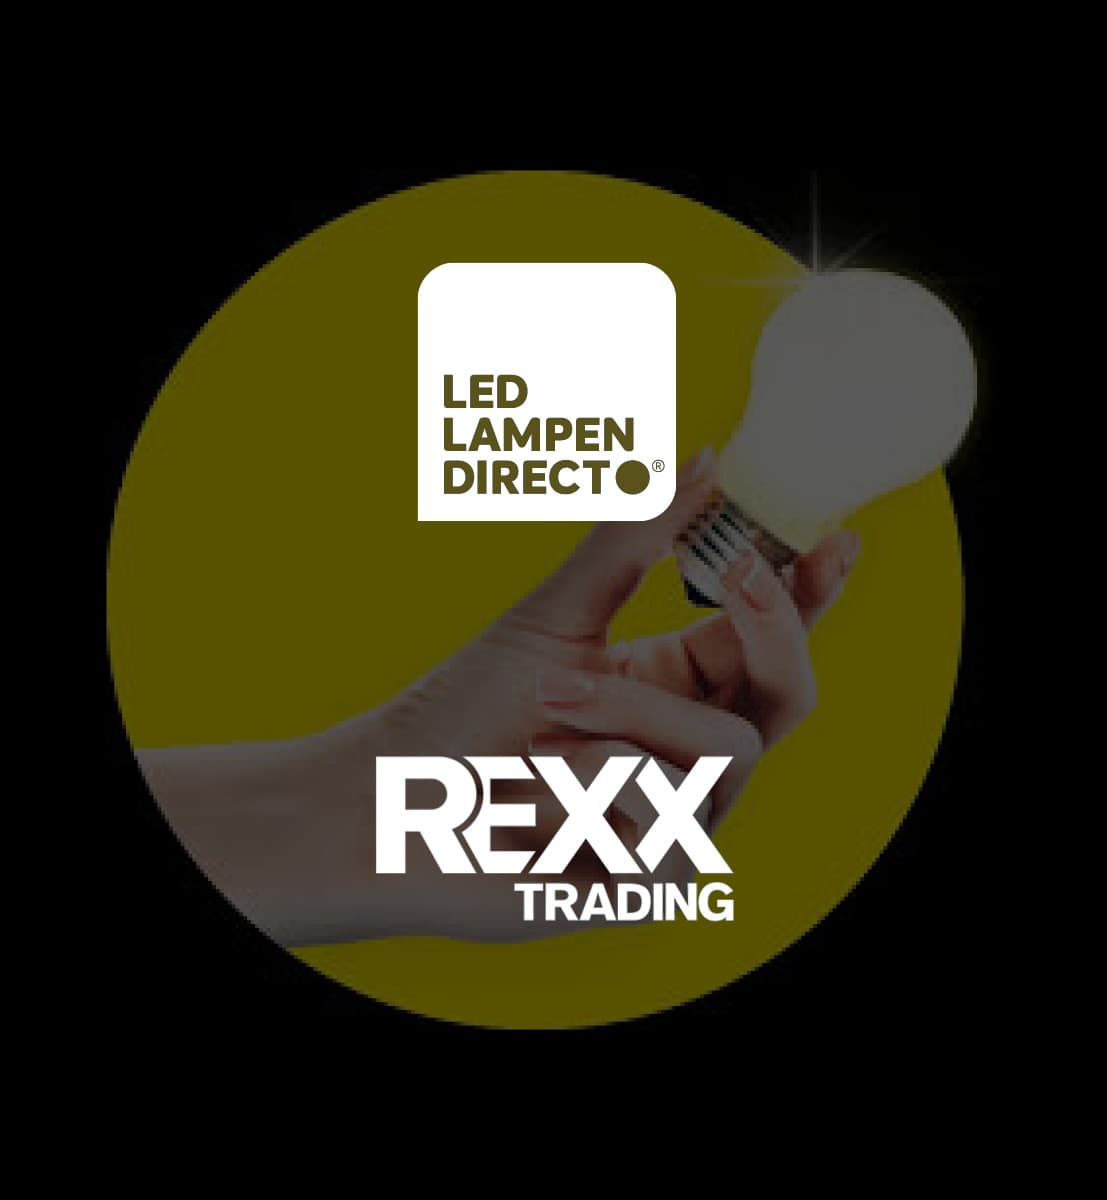 DEX international M&A advised Bovenstein on the sale of REXX Trading BV